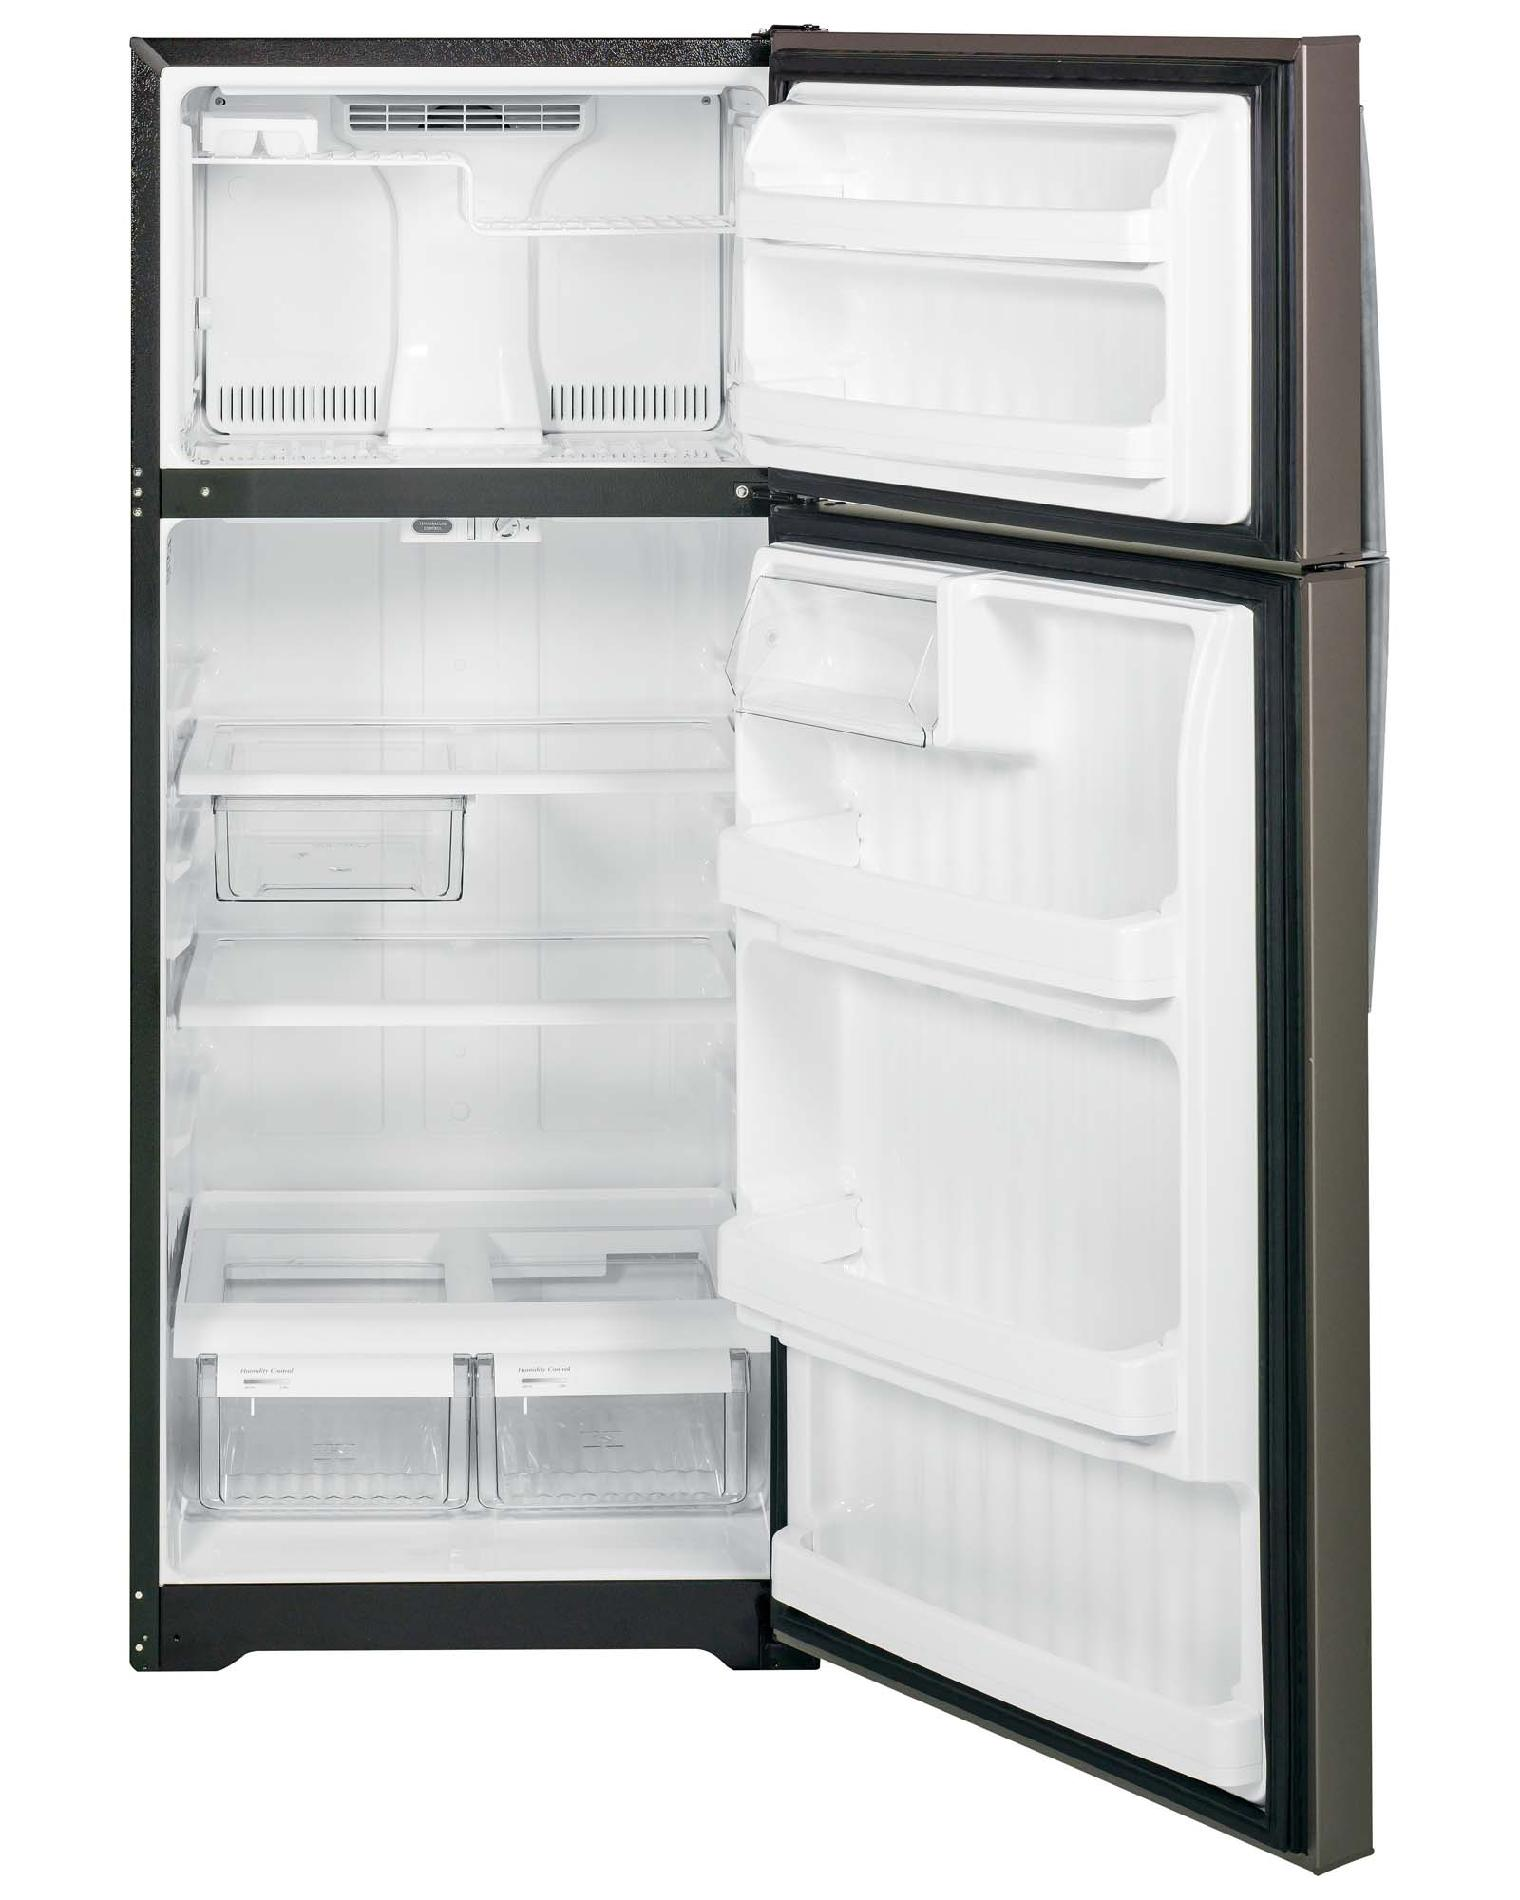 GE Appliances 18.1 cu. ft. Top-Freezer Refrigerator - Slate